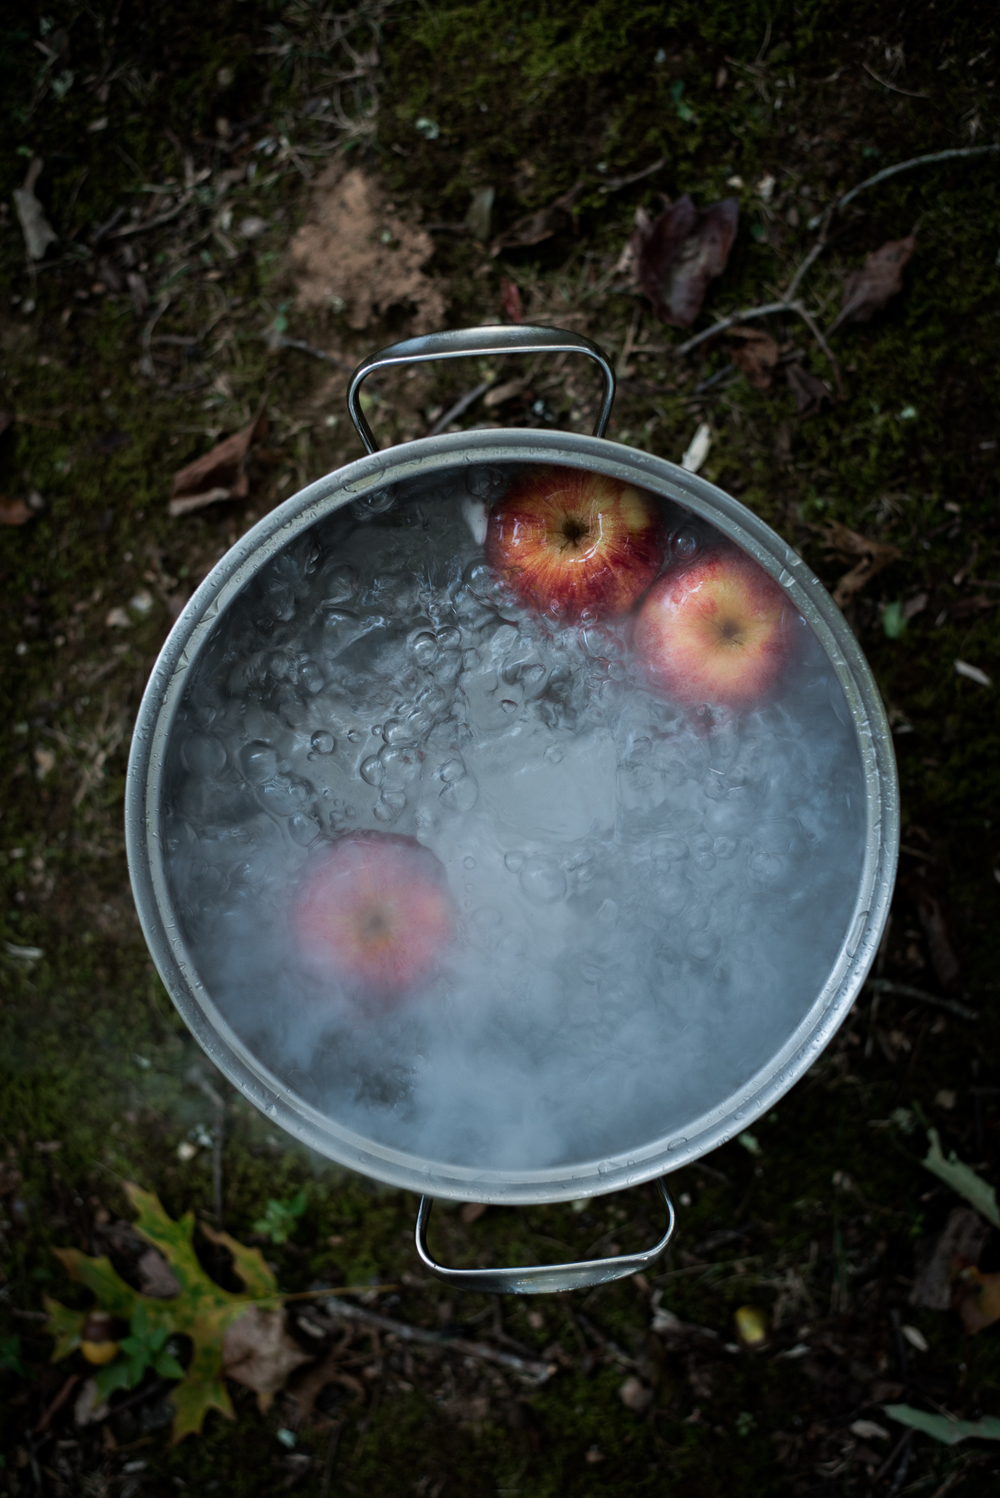 Asheville Folk: A Grown-up Halloween by Chelsea Lane. Keep traditions bubblin ' .  Fill a large pot or galvanized tub with water and dry  ice. Plop in a few apples.  Shazam! A bubbling cauldron with the nostalgia of bobbing-for-appl es ready to go.